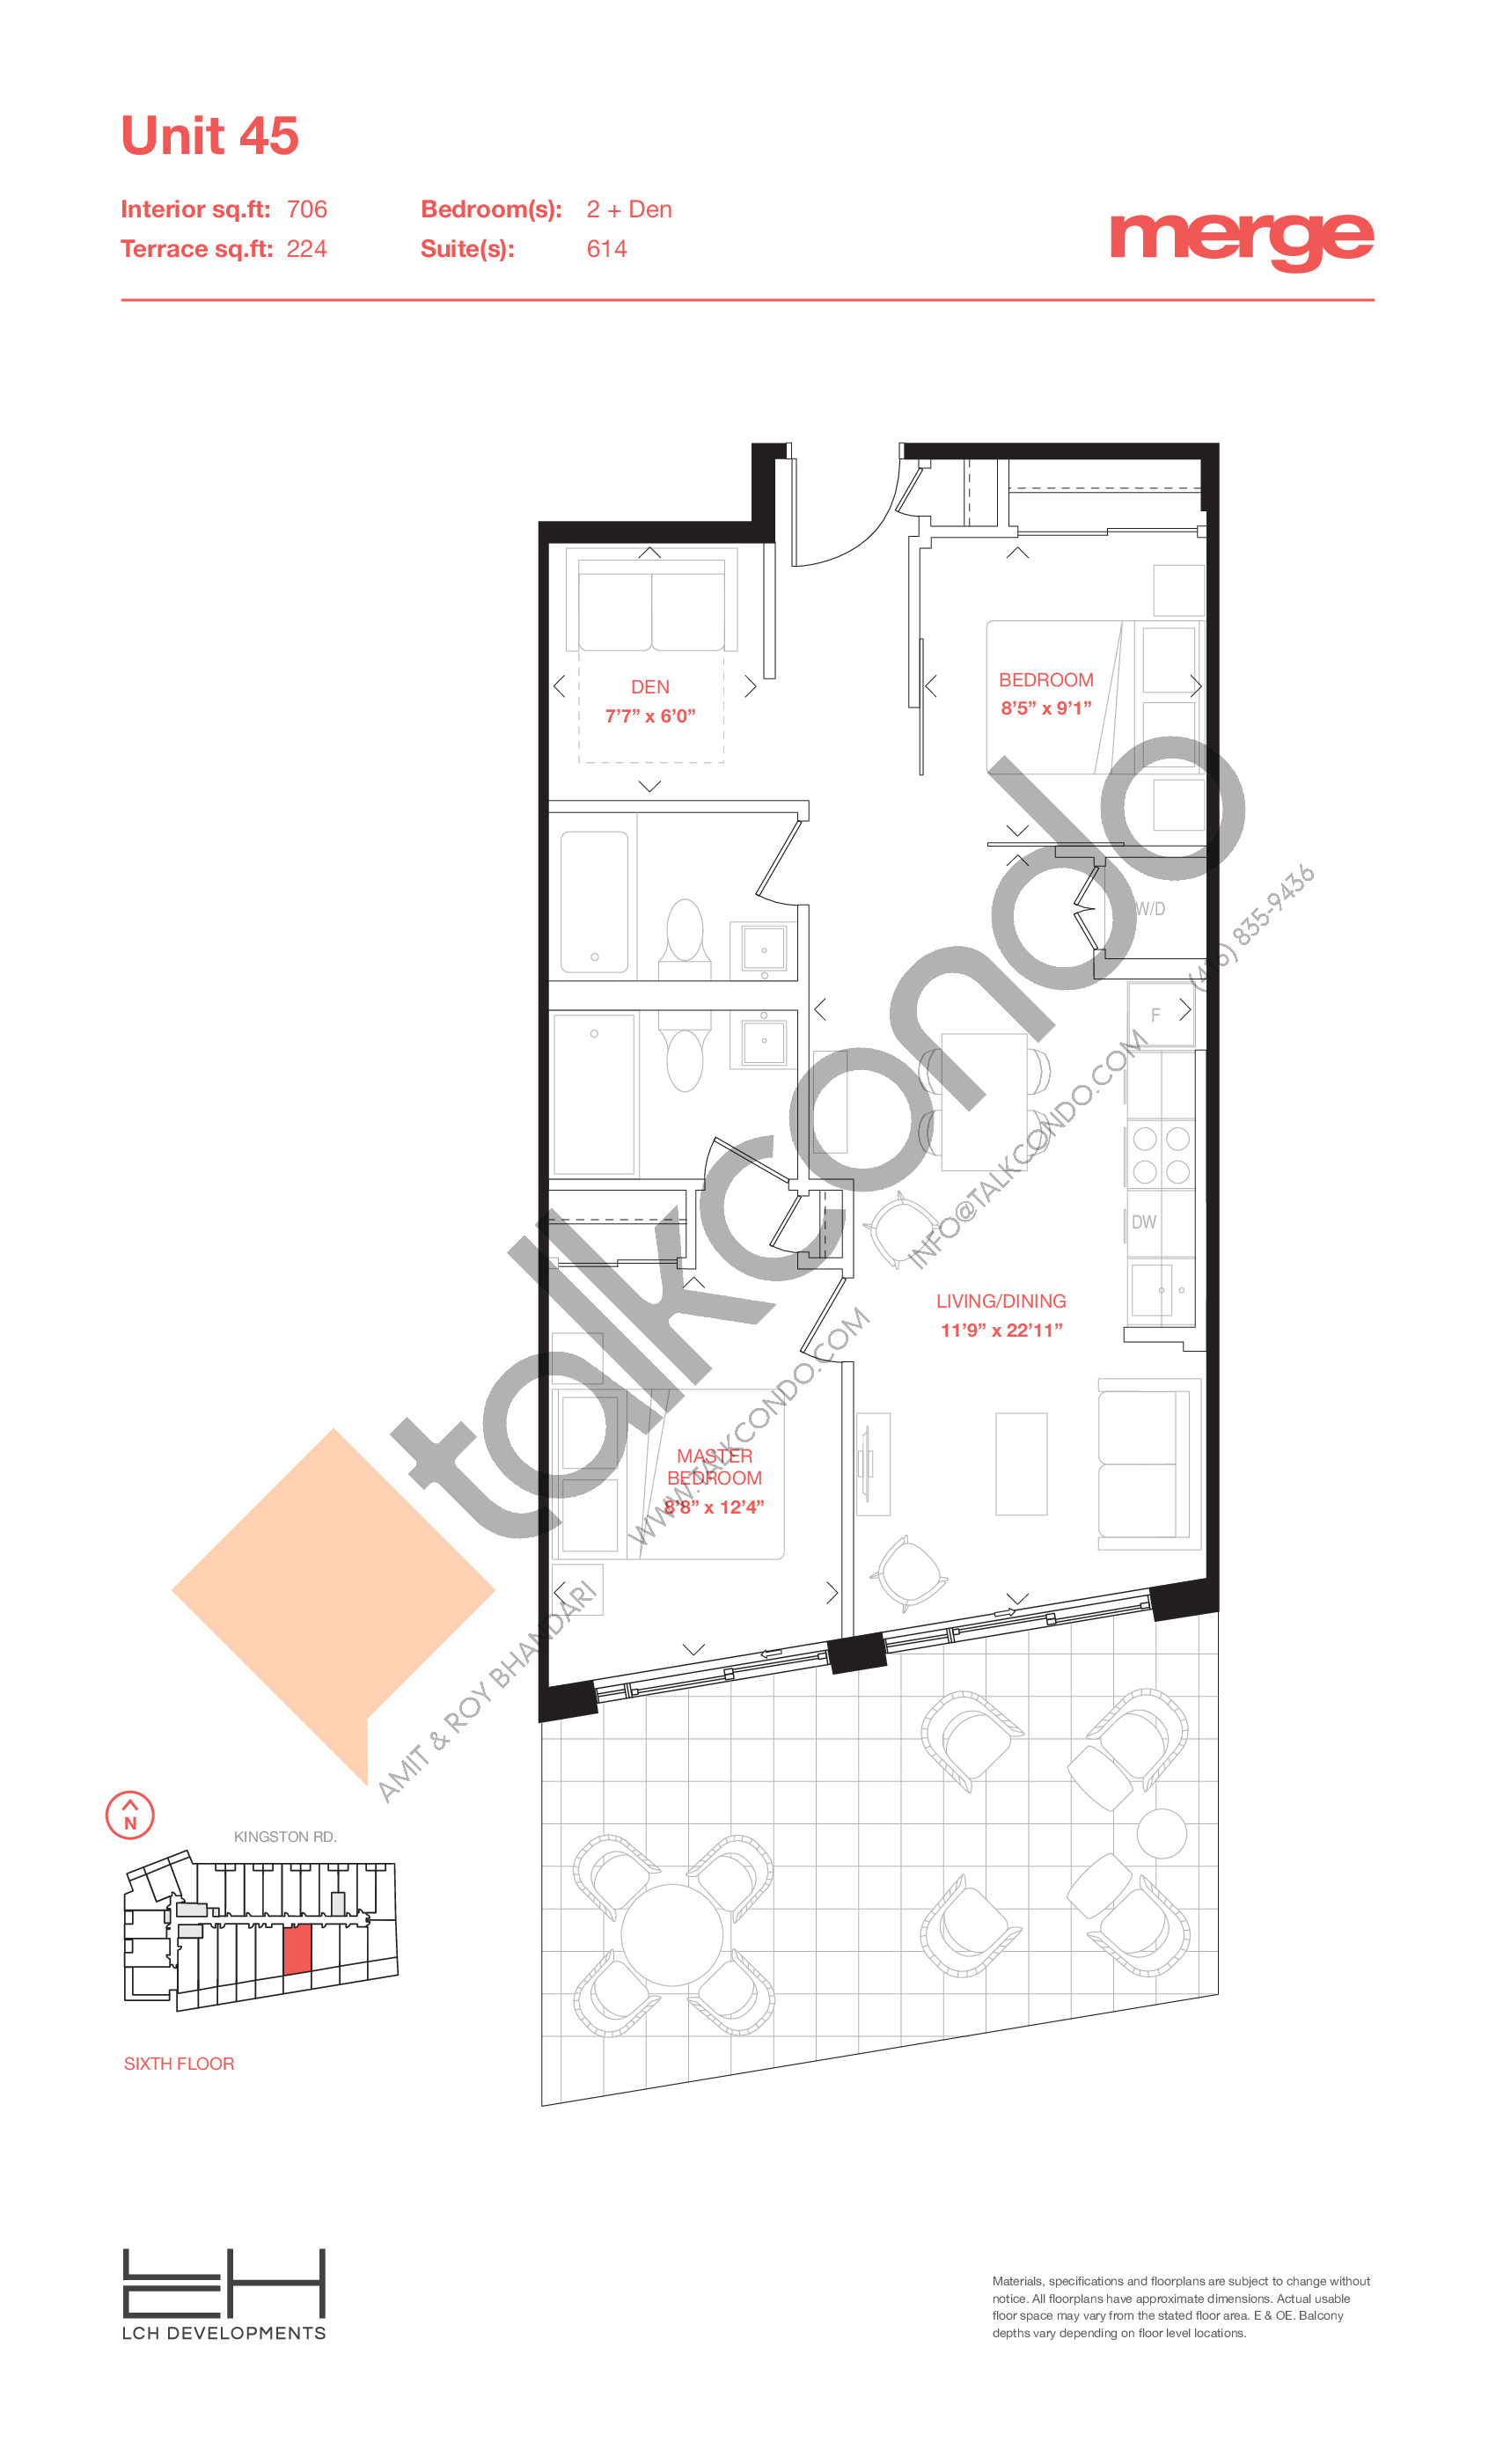 Unit 45 - Terraces Floor Plan at Merge Condos - 706 sq.ft